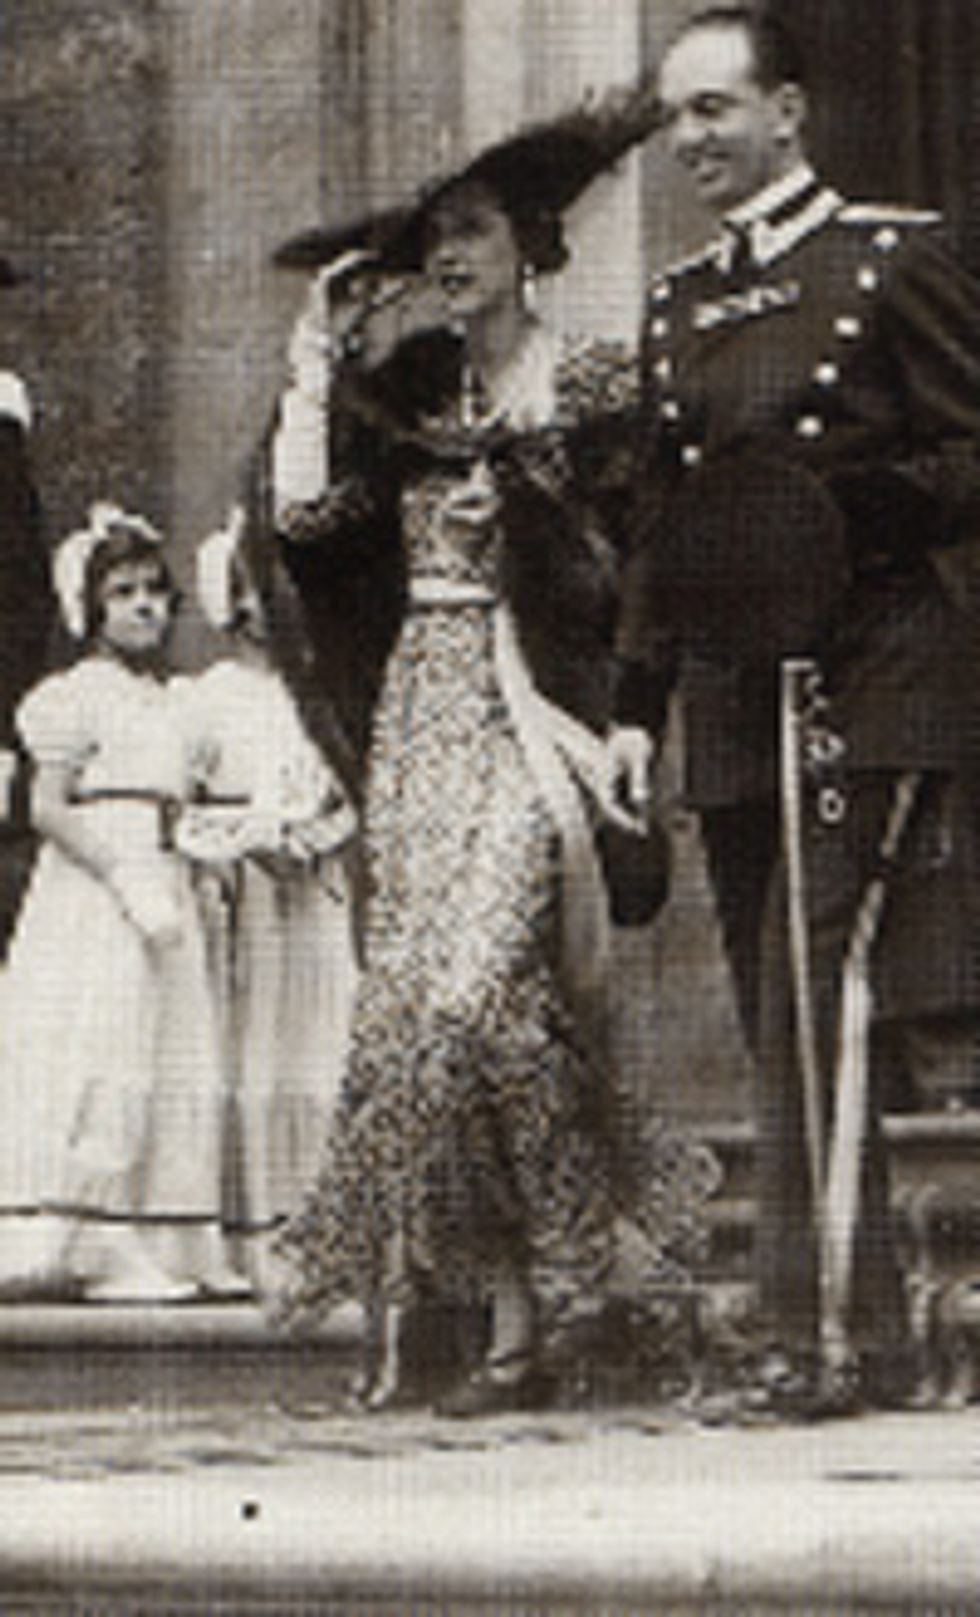 This Week's Royal is Marie Jose of Italy